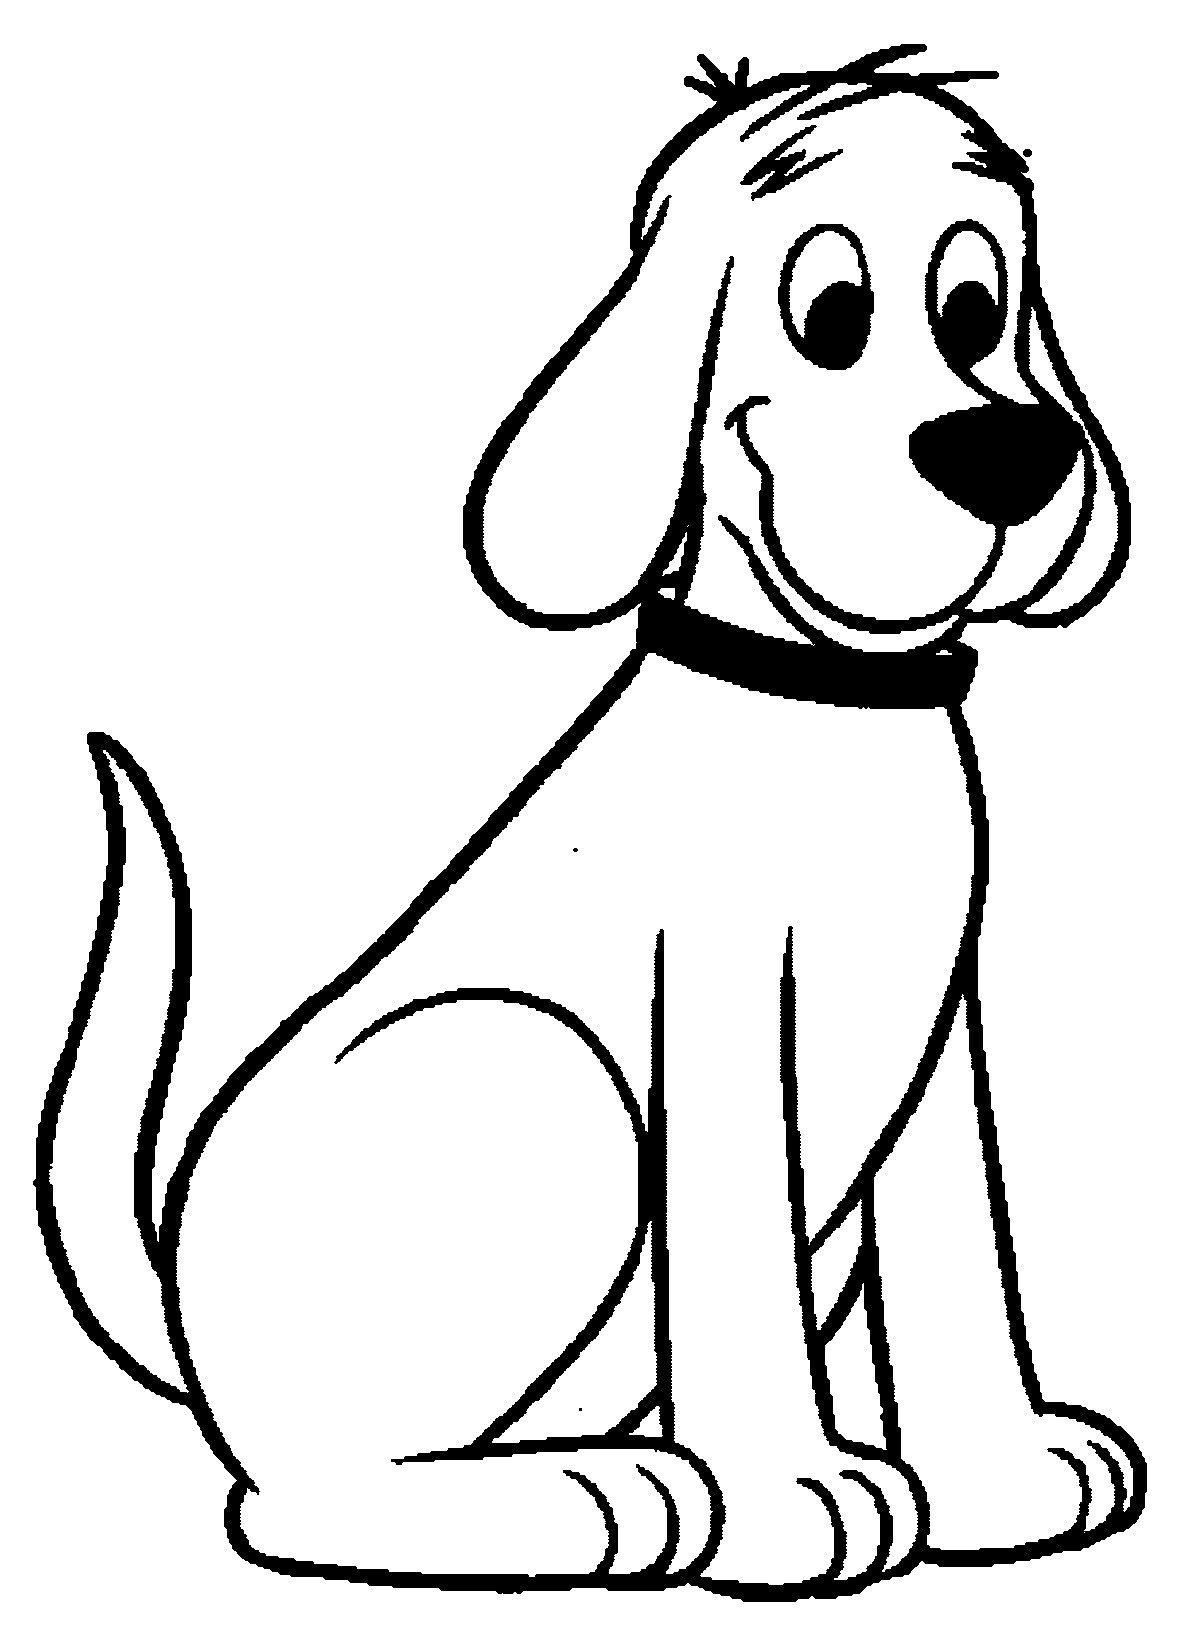 Sitting Dog Drawing | Free download on ClipArtMag